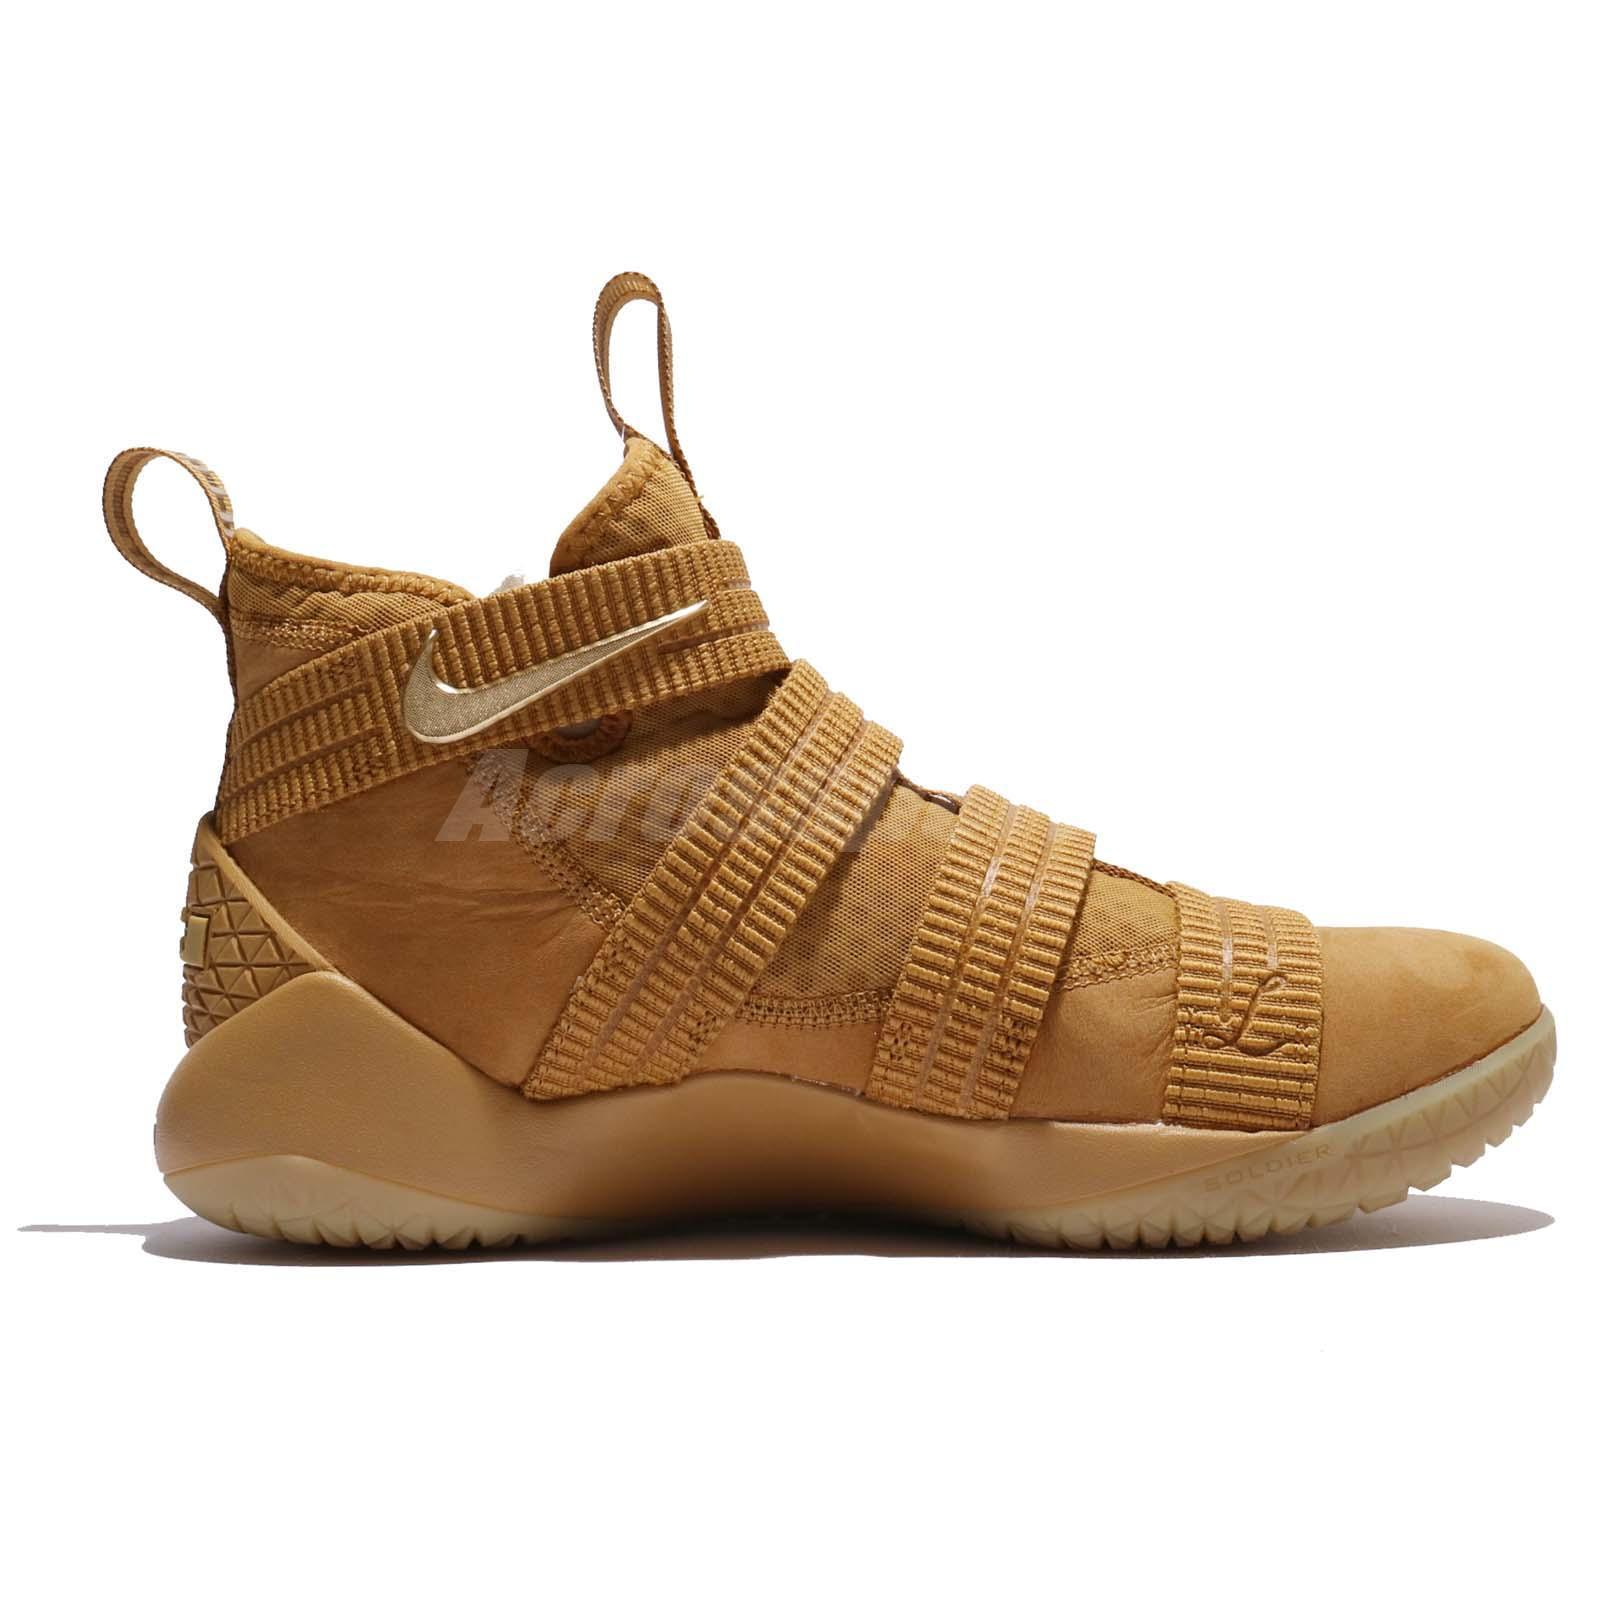 f25a488fe79 nike lebron soldier 11 sfg wheat gold 3 - WearTesters